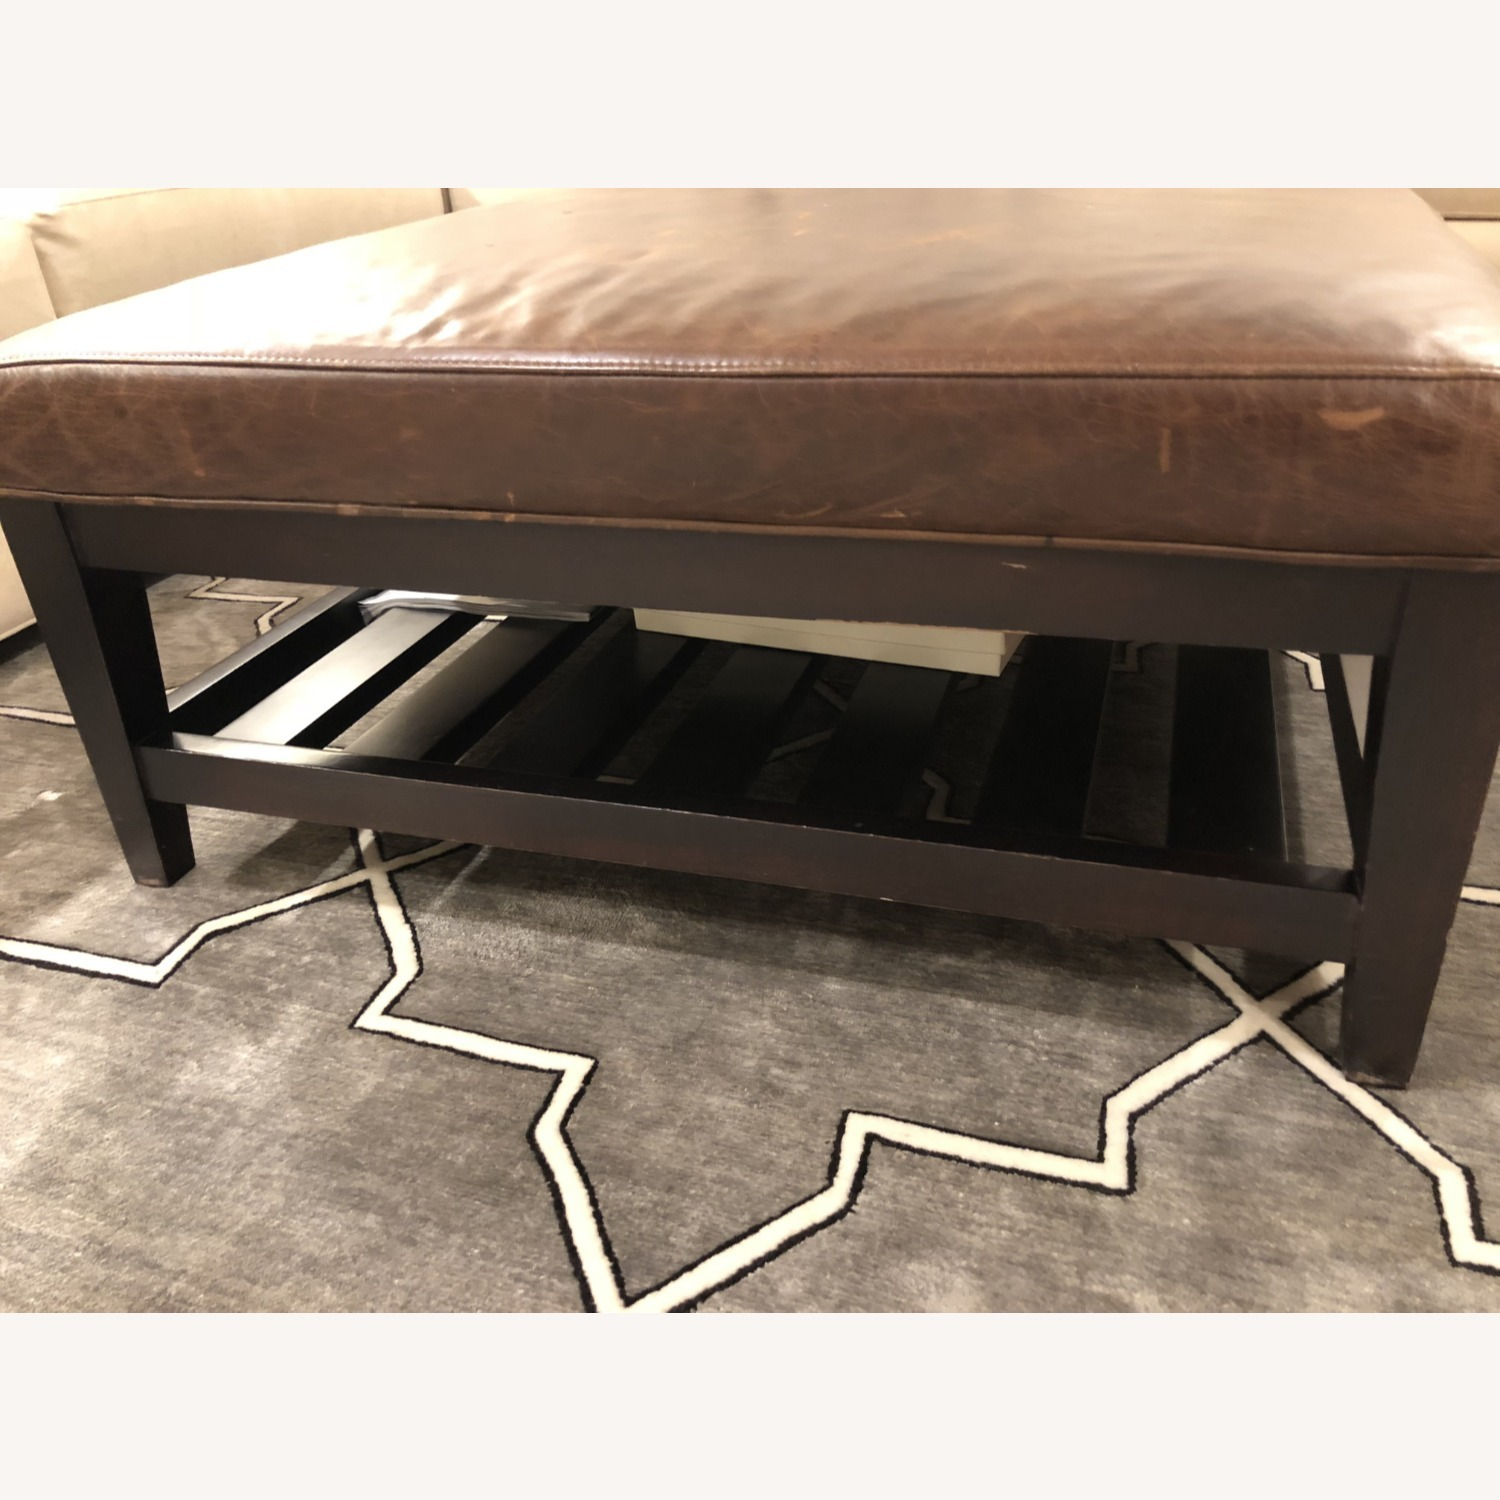 Crate & Barrel Leather & Wood Coffee Table/Ottoman - image-2